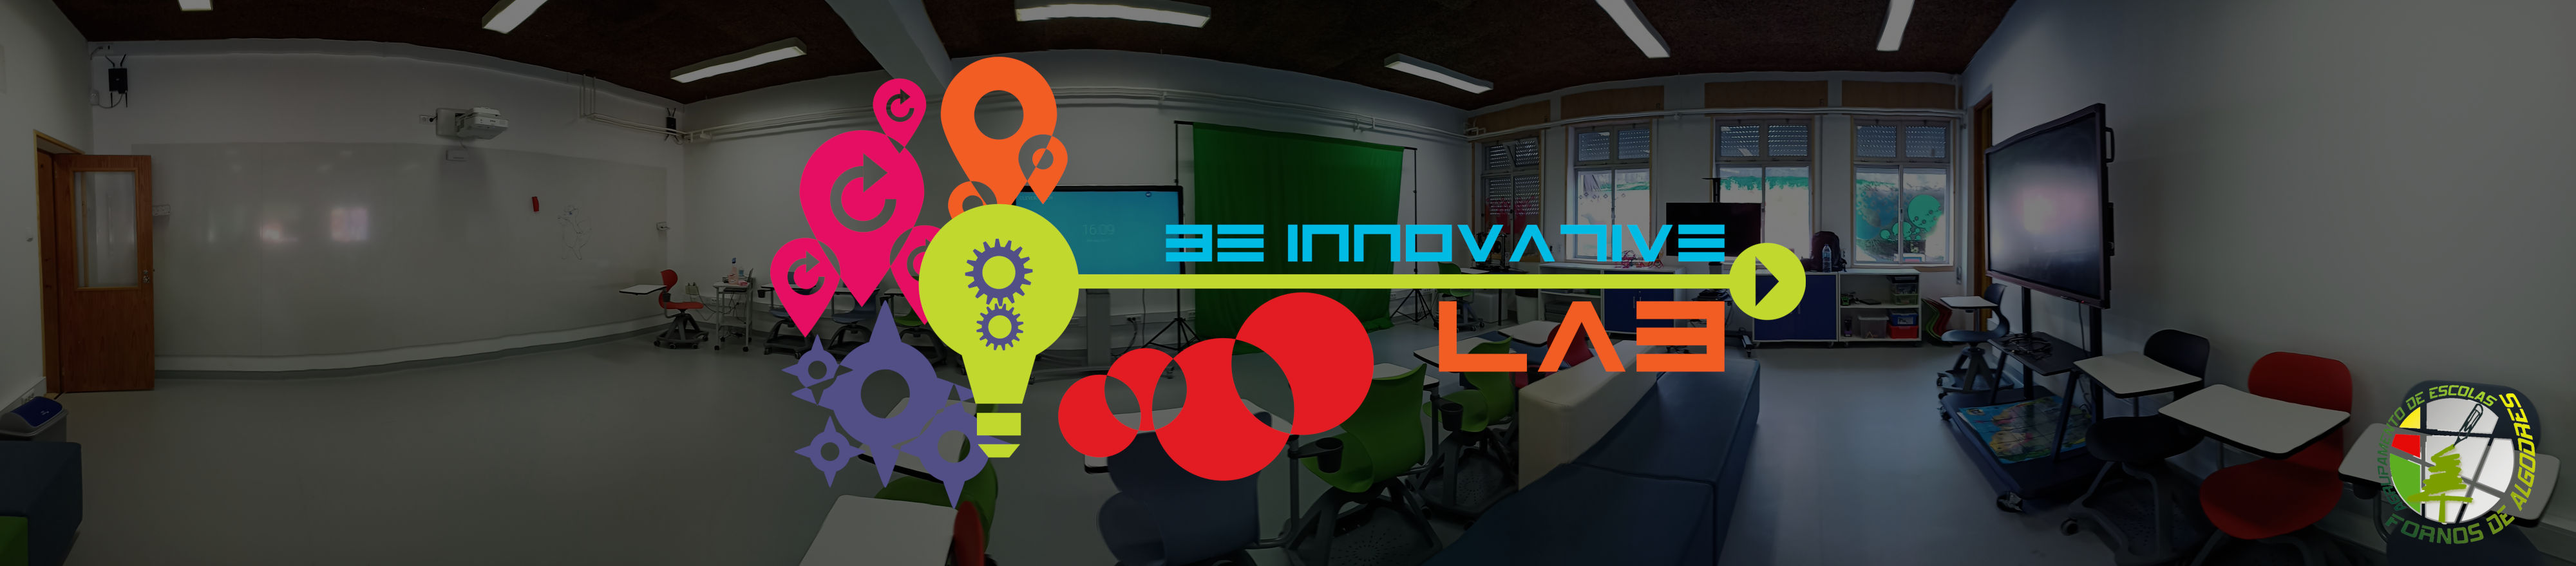 Be Innovative Lab - AE Fornos de Algodres